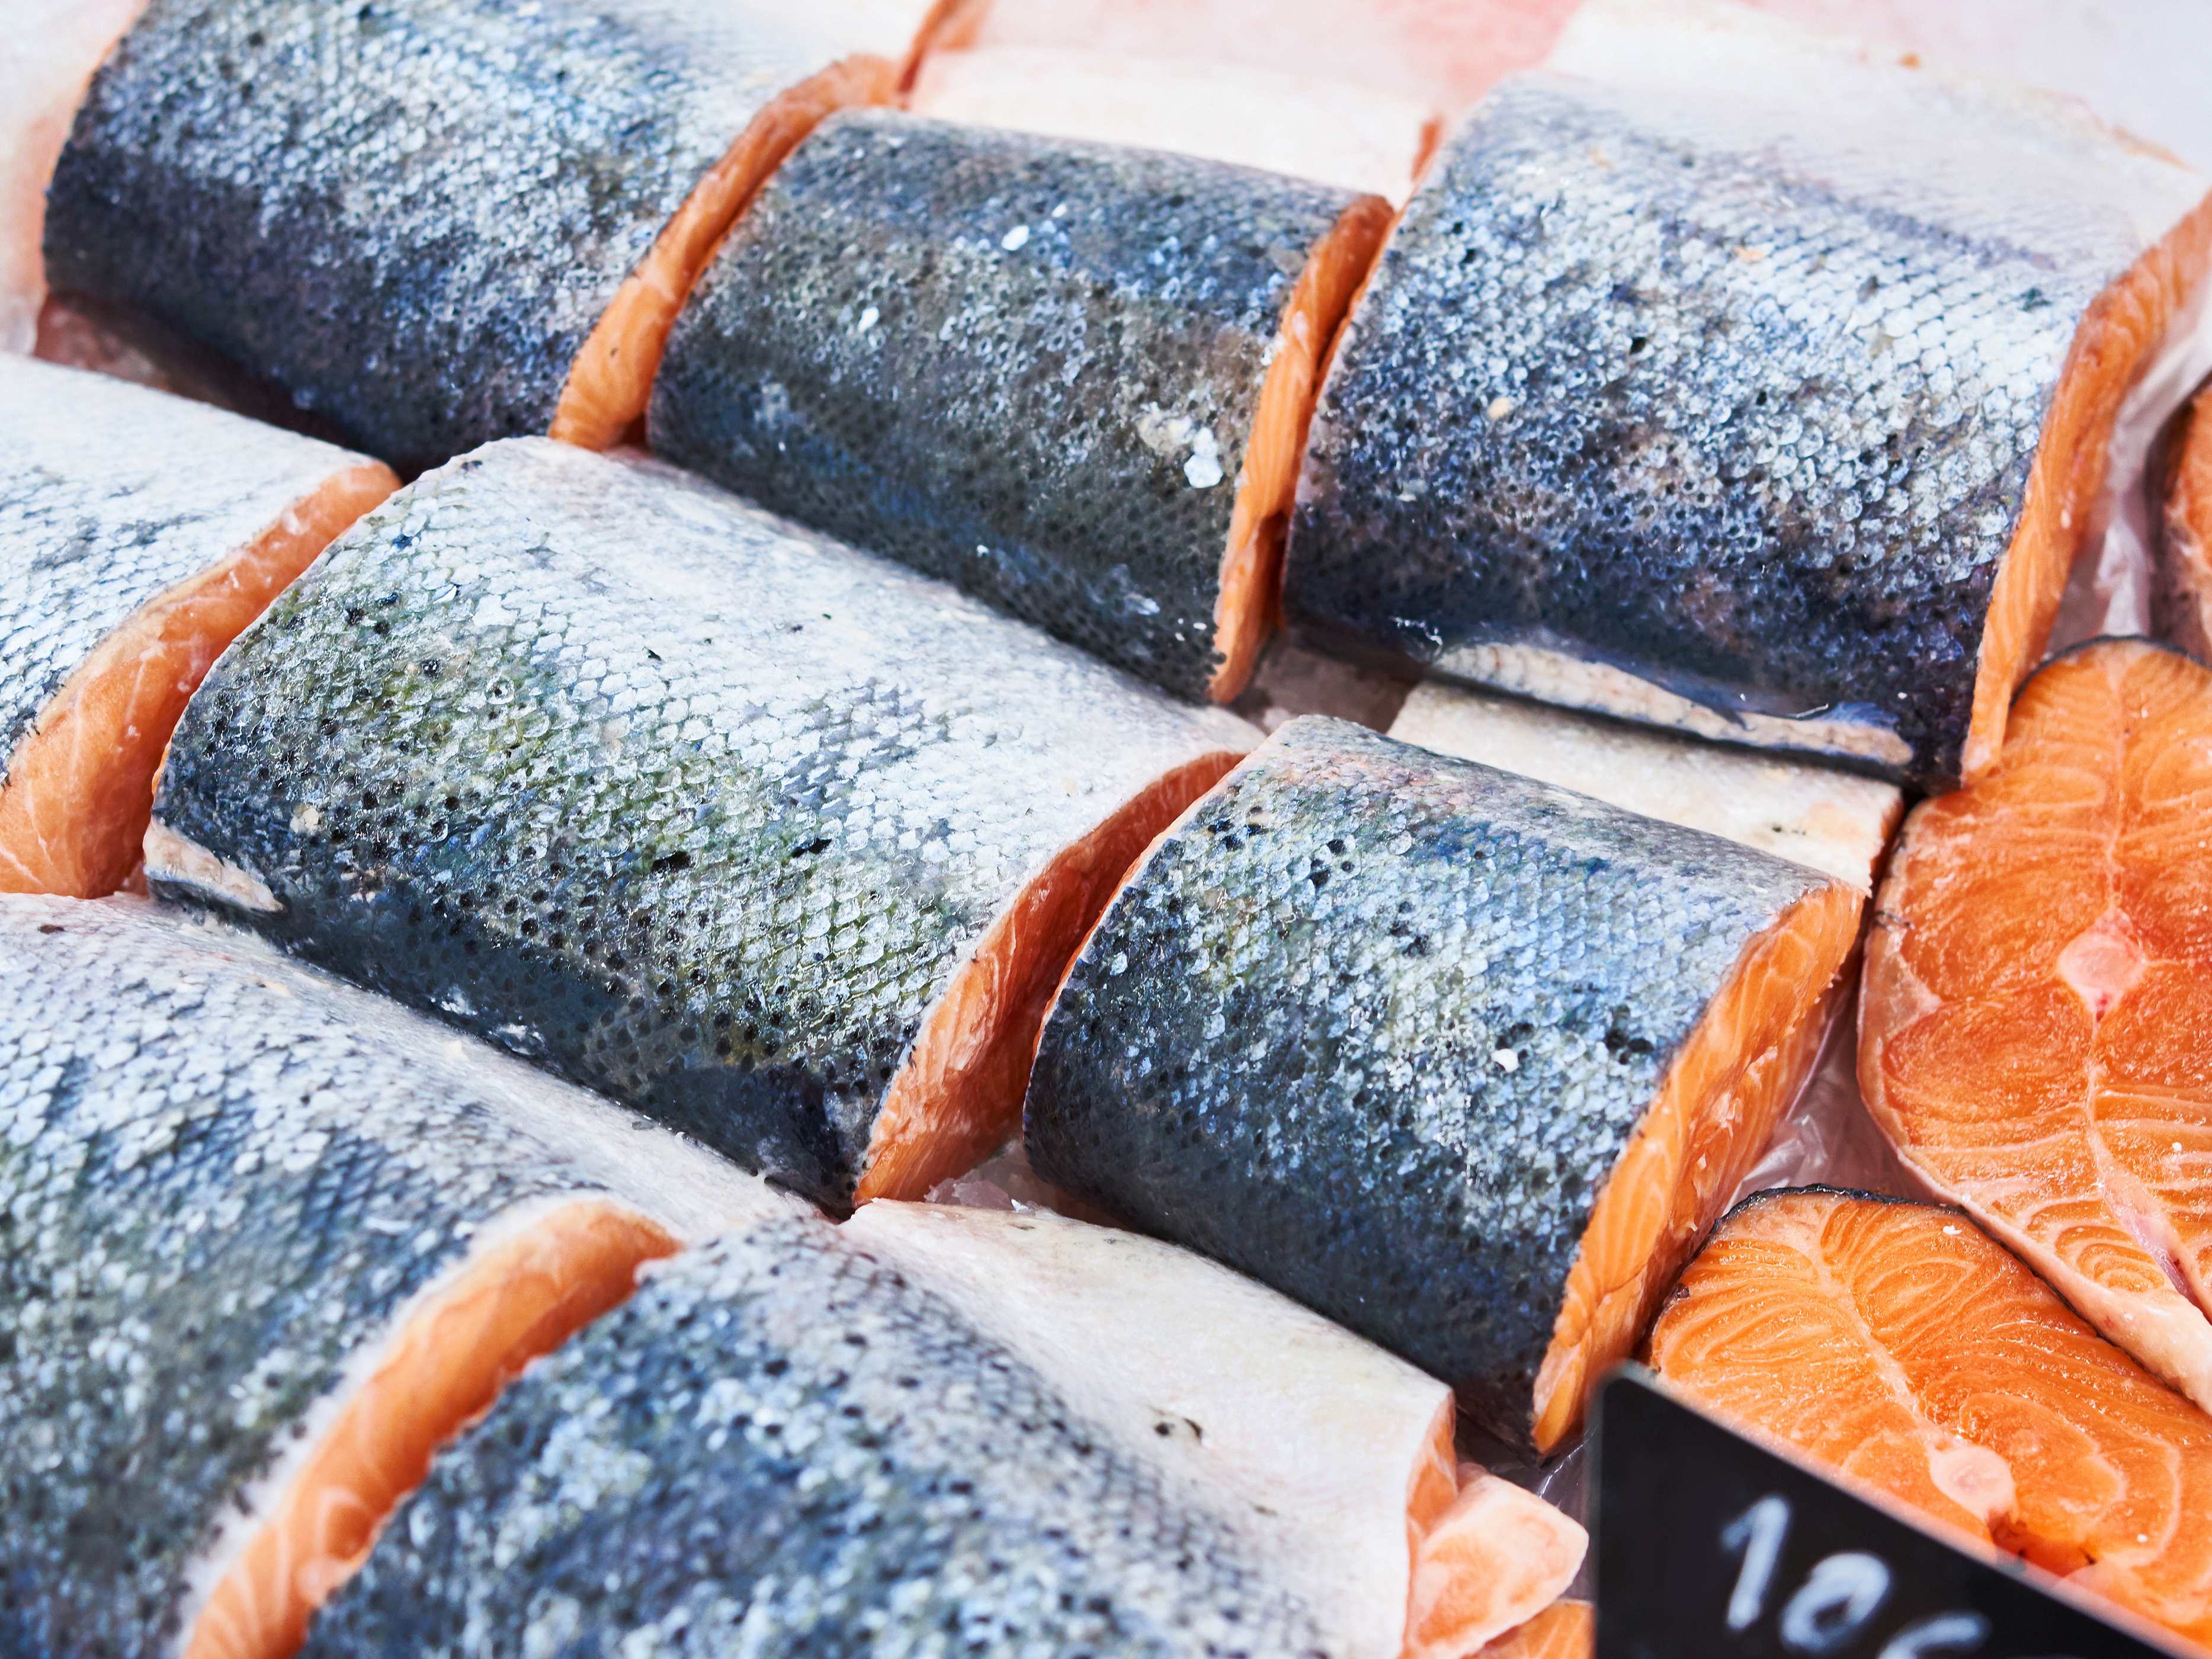 Get Schooled: How to Buy the Best Salmon at the Grocery